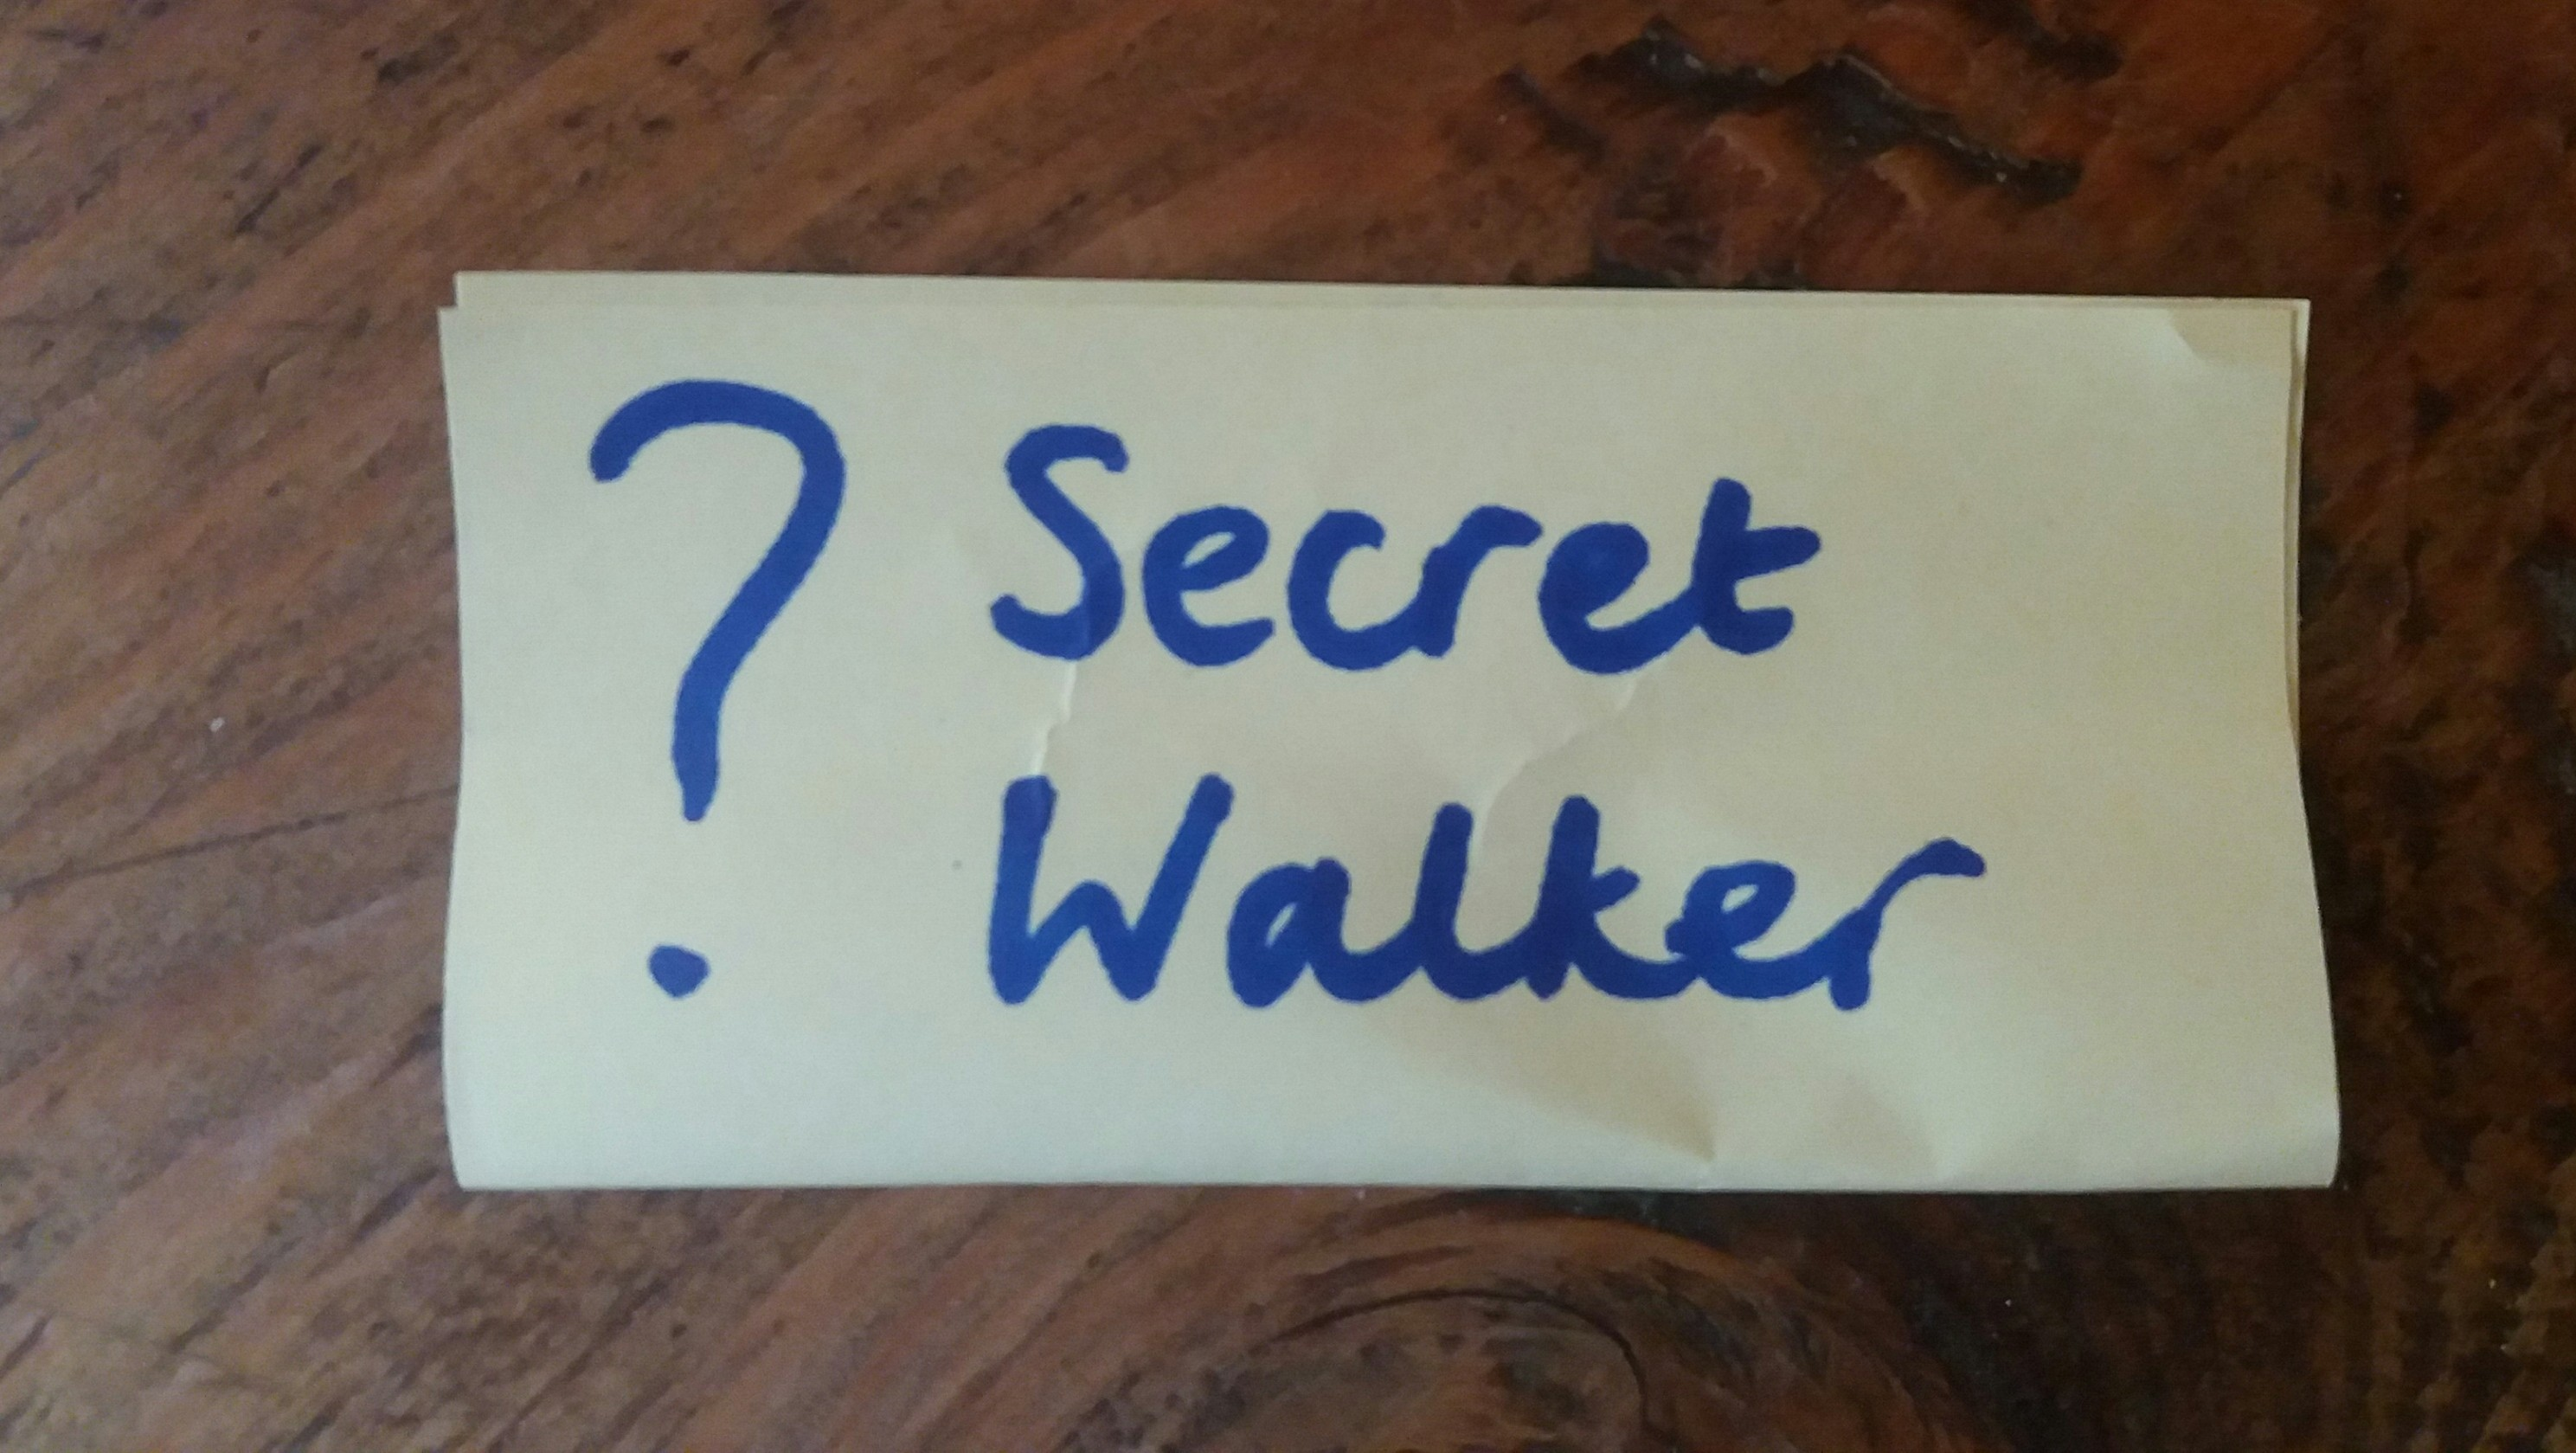 Who is the Secret Walker in your classroom?